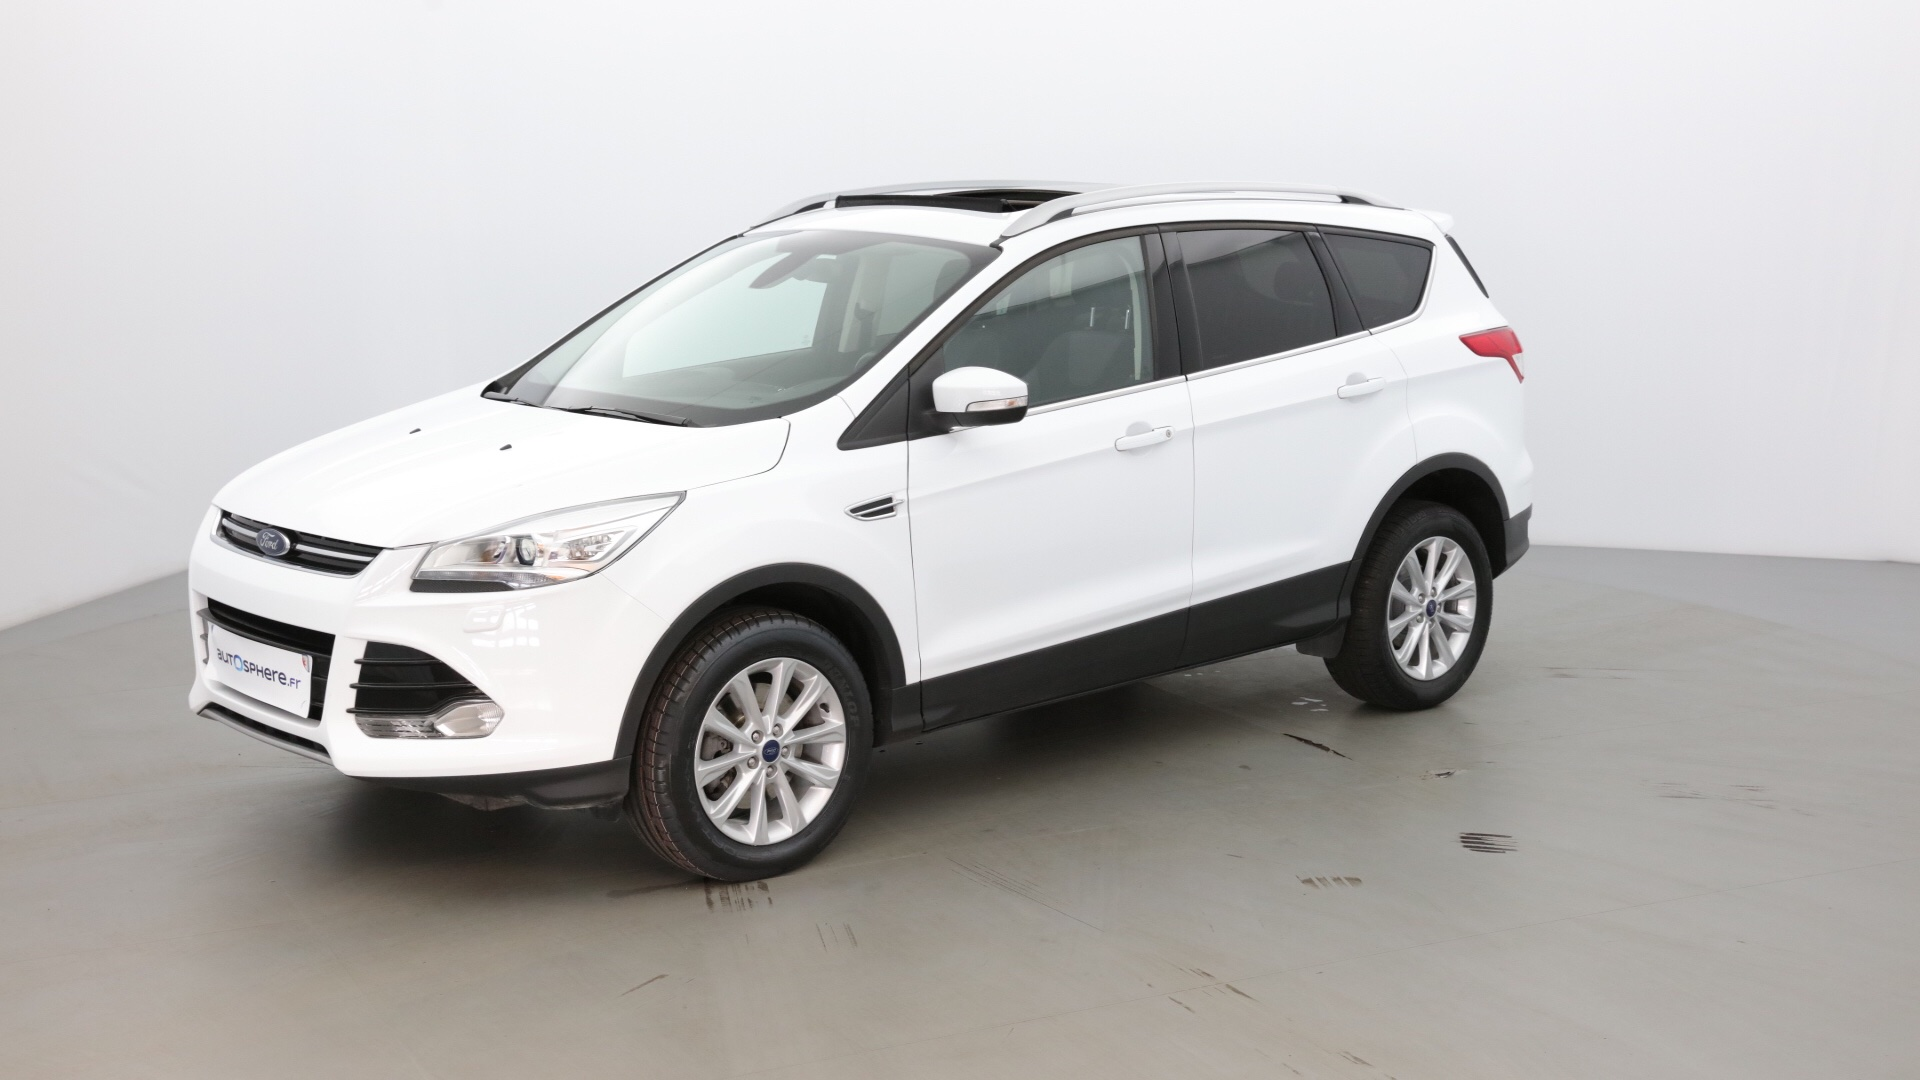 achat en ligne ford kuga 2 0 tdci 180ch titanium 4x4 powershift occasion break automatique. Black Bedroom Furniture Sets. Home Design Ideas